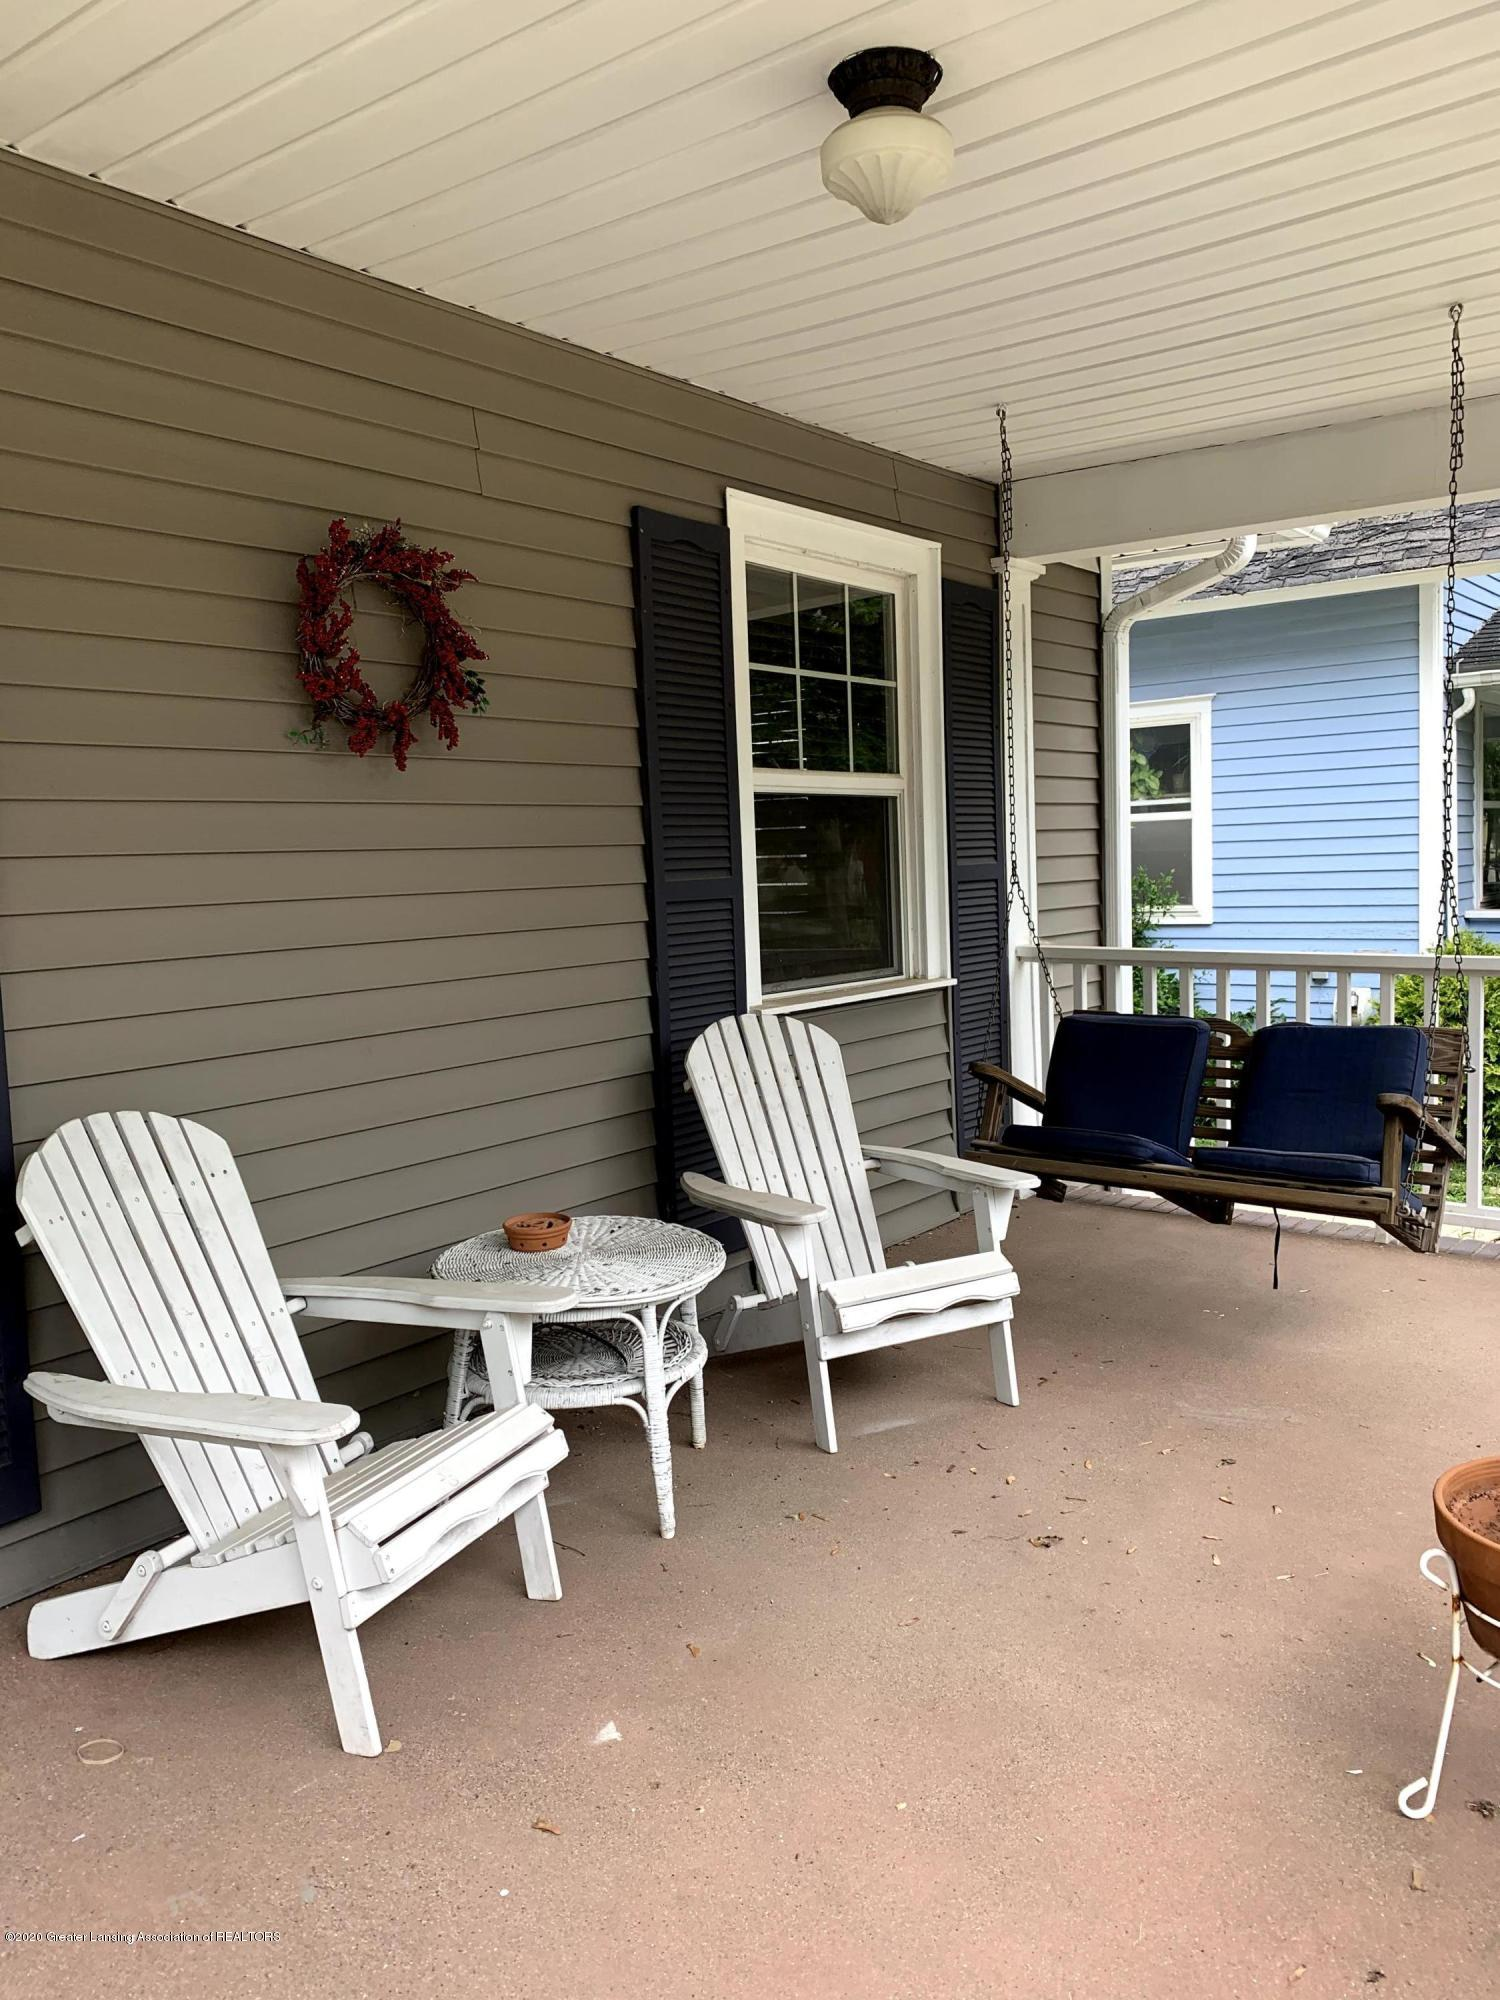 523 N Jenison Ave - Porch - 4